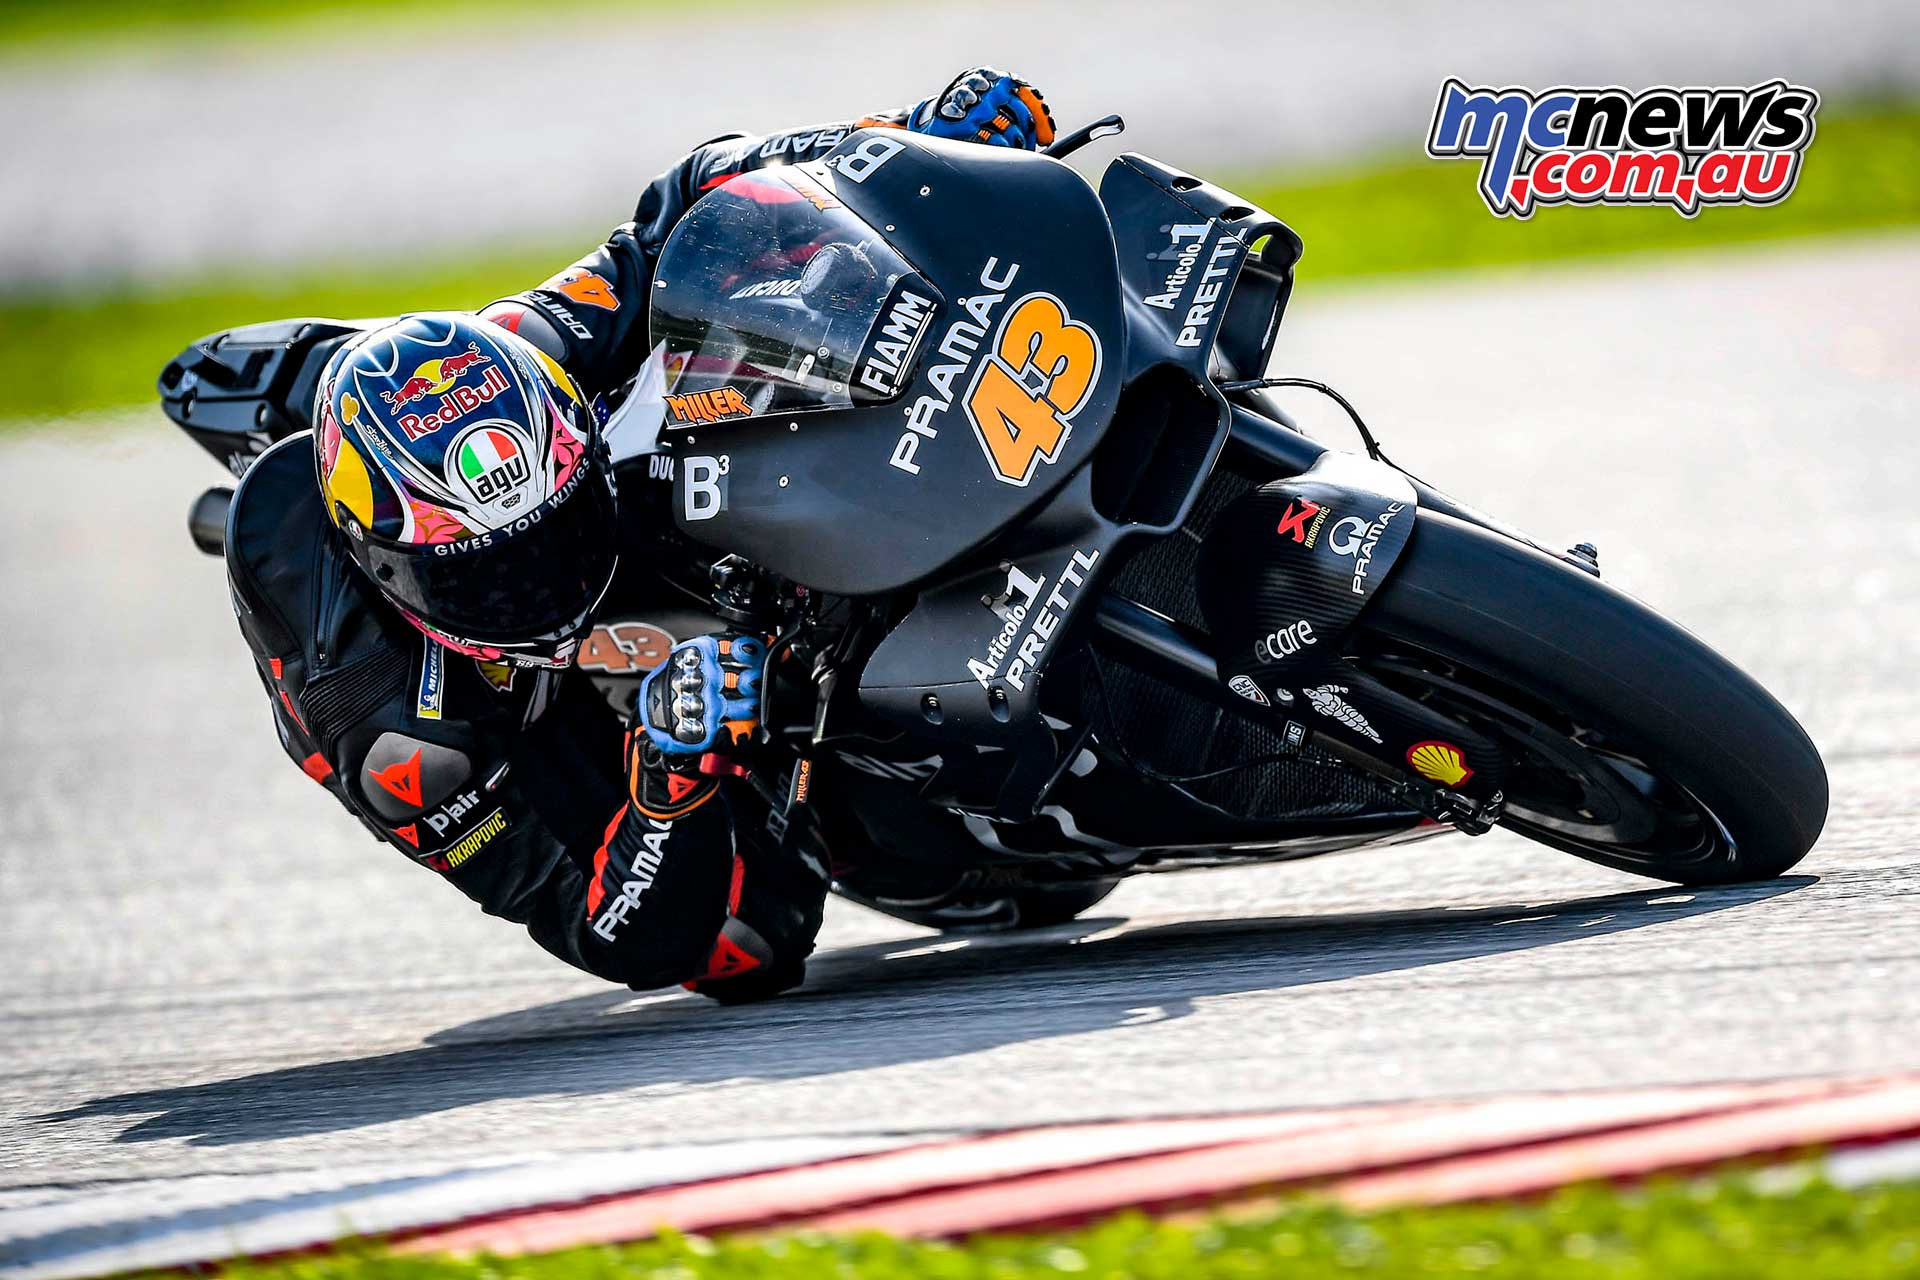 Motogp Live Streaming On Iphone | MotoGP 2017 Info, Video, Points Table